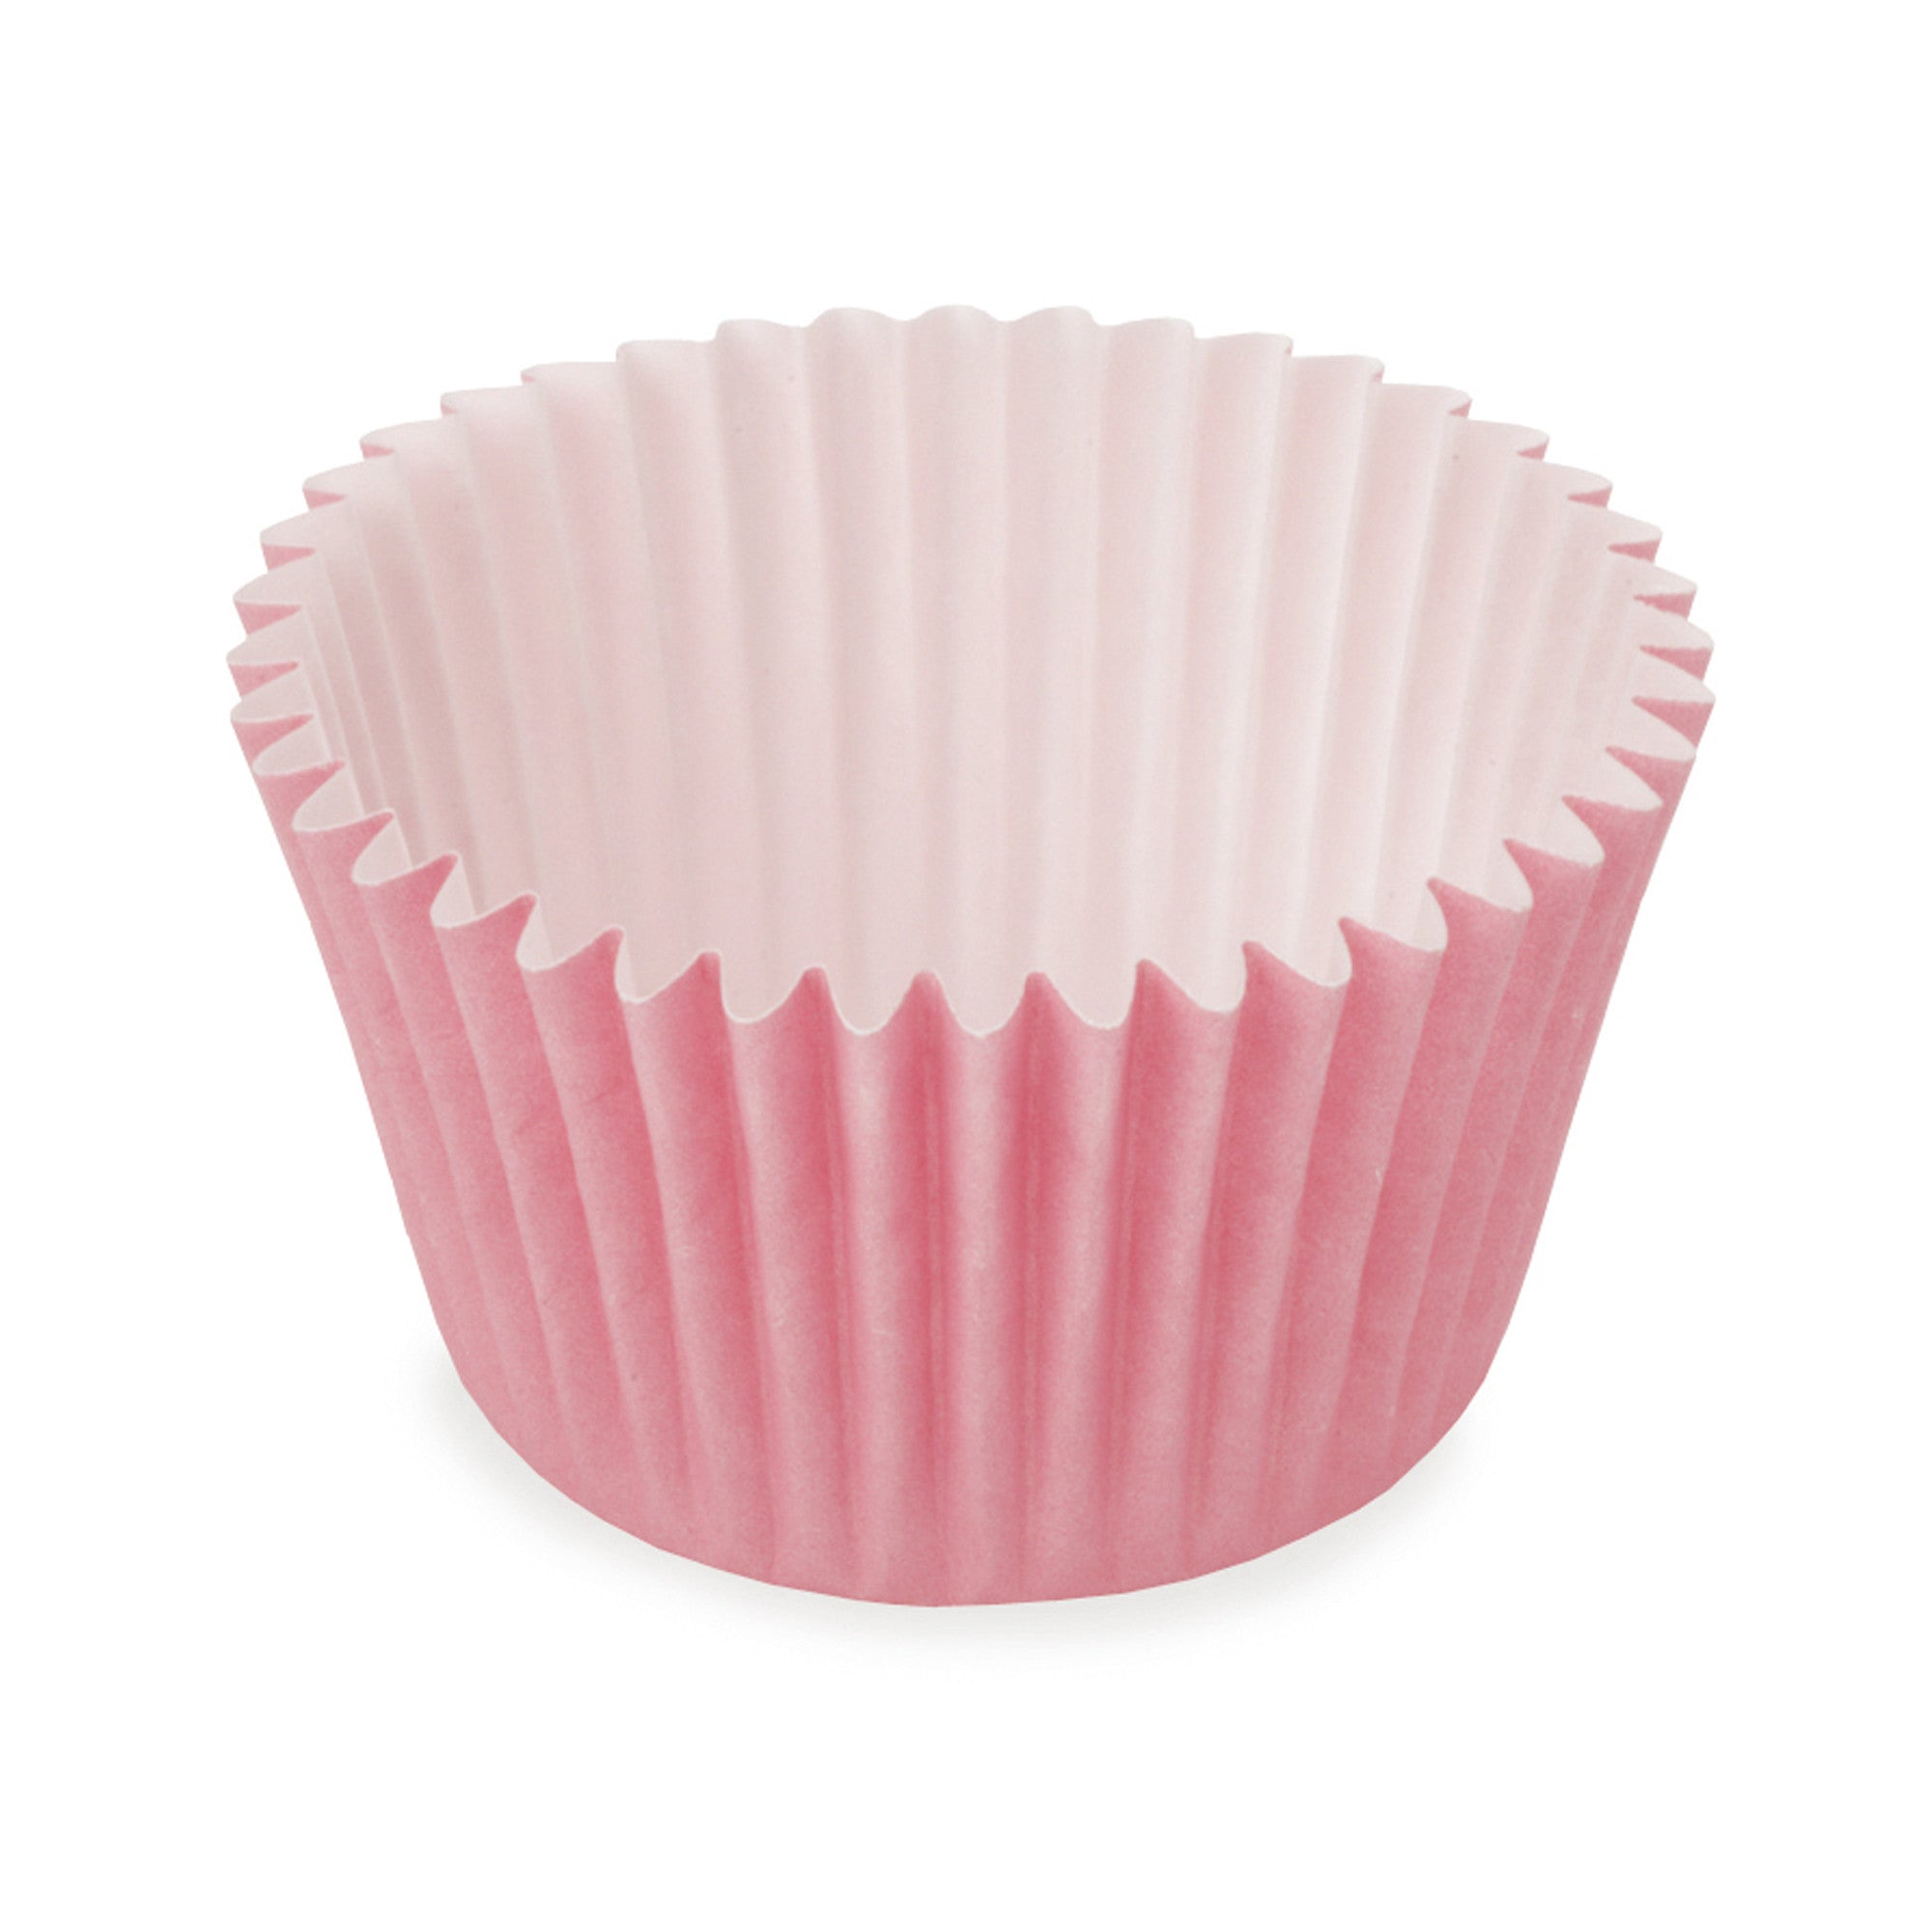 Cupcake Baking Cups, SWC253 - Welcome Home Brands